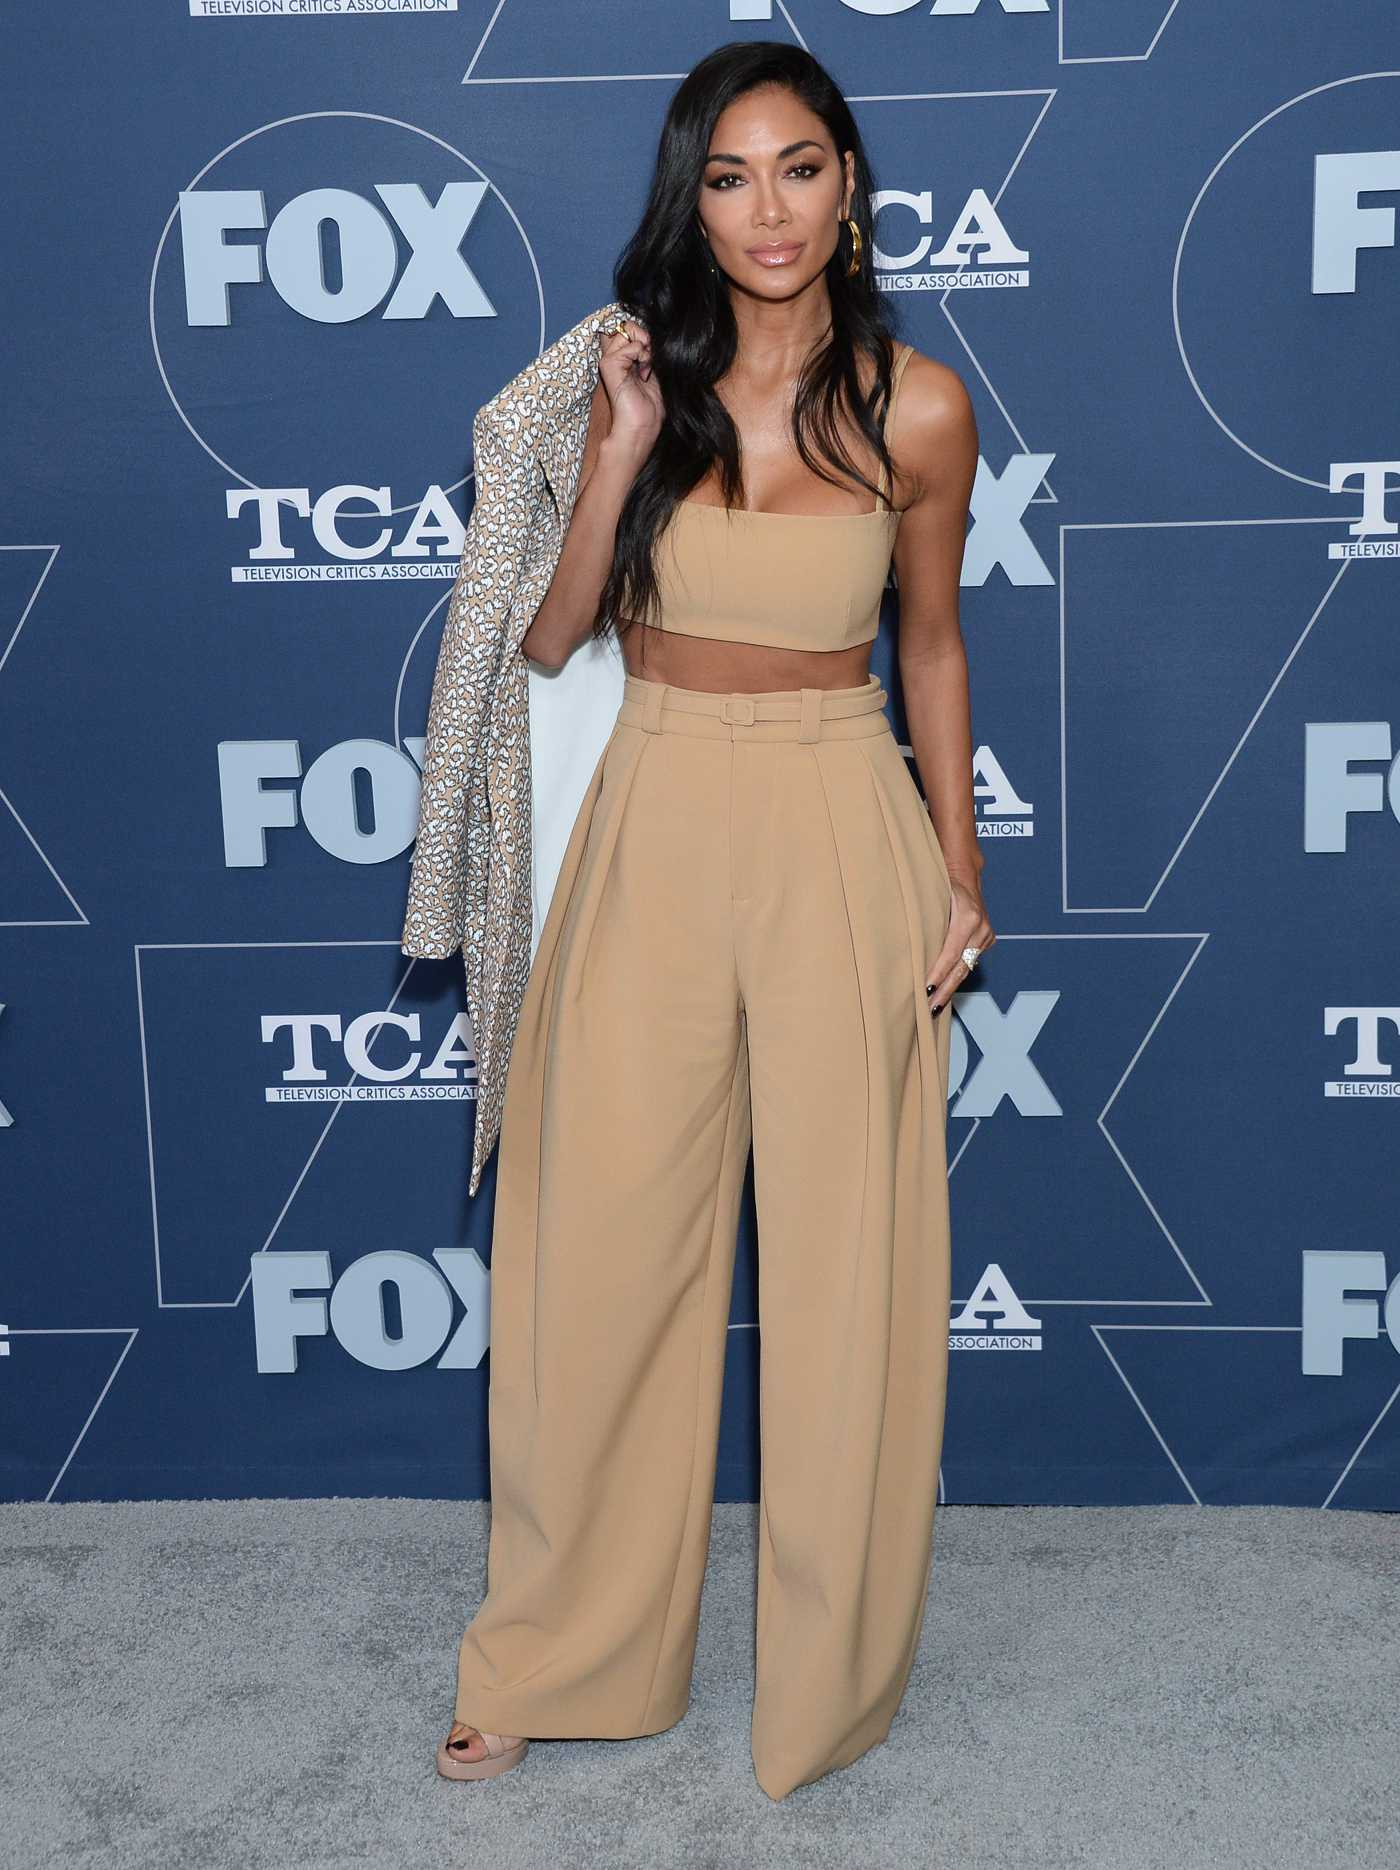 Nicole Scherzinger Attends 2020 Fox TCA Winter Press Tour All-Star Party in Pasadena 01/07/2020